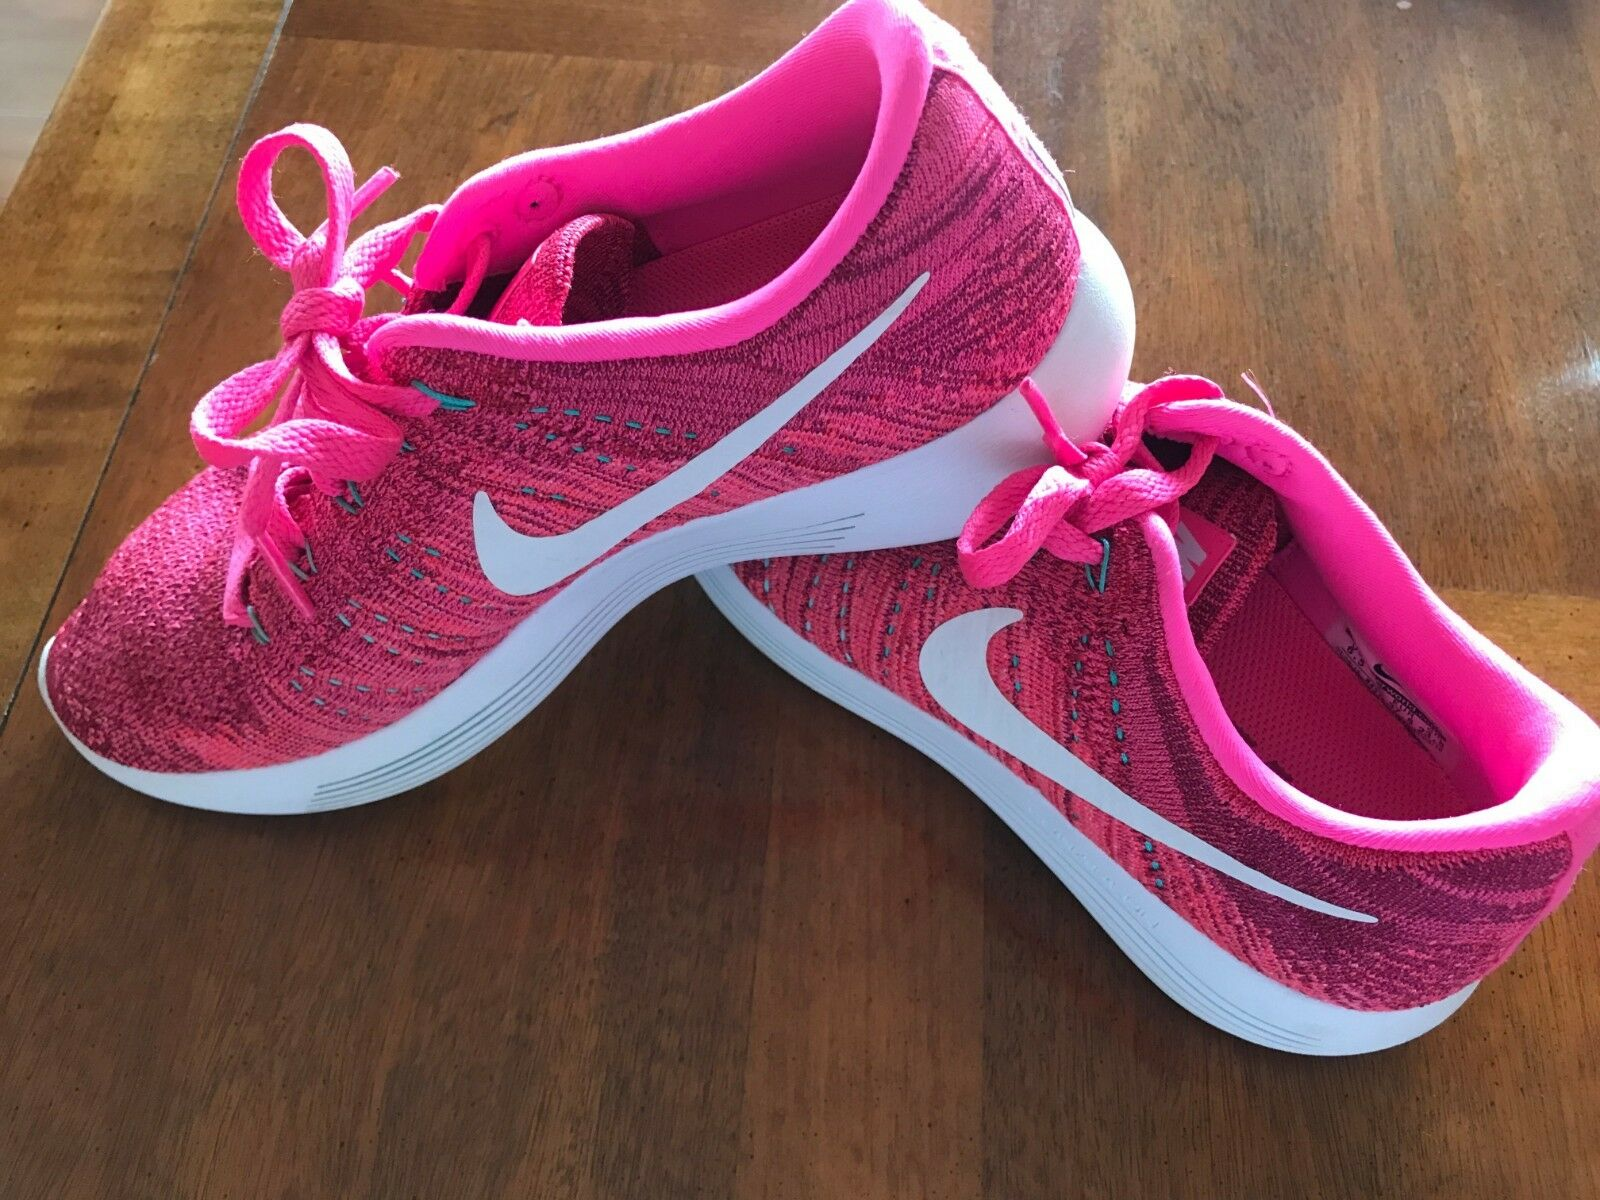 NIKE PINK LUNAREPIC FLYKNIT WOMENS RUNNING TRAINING SHOES SIZE 6.5 US   37.5 EUR